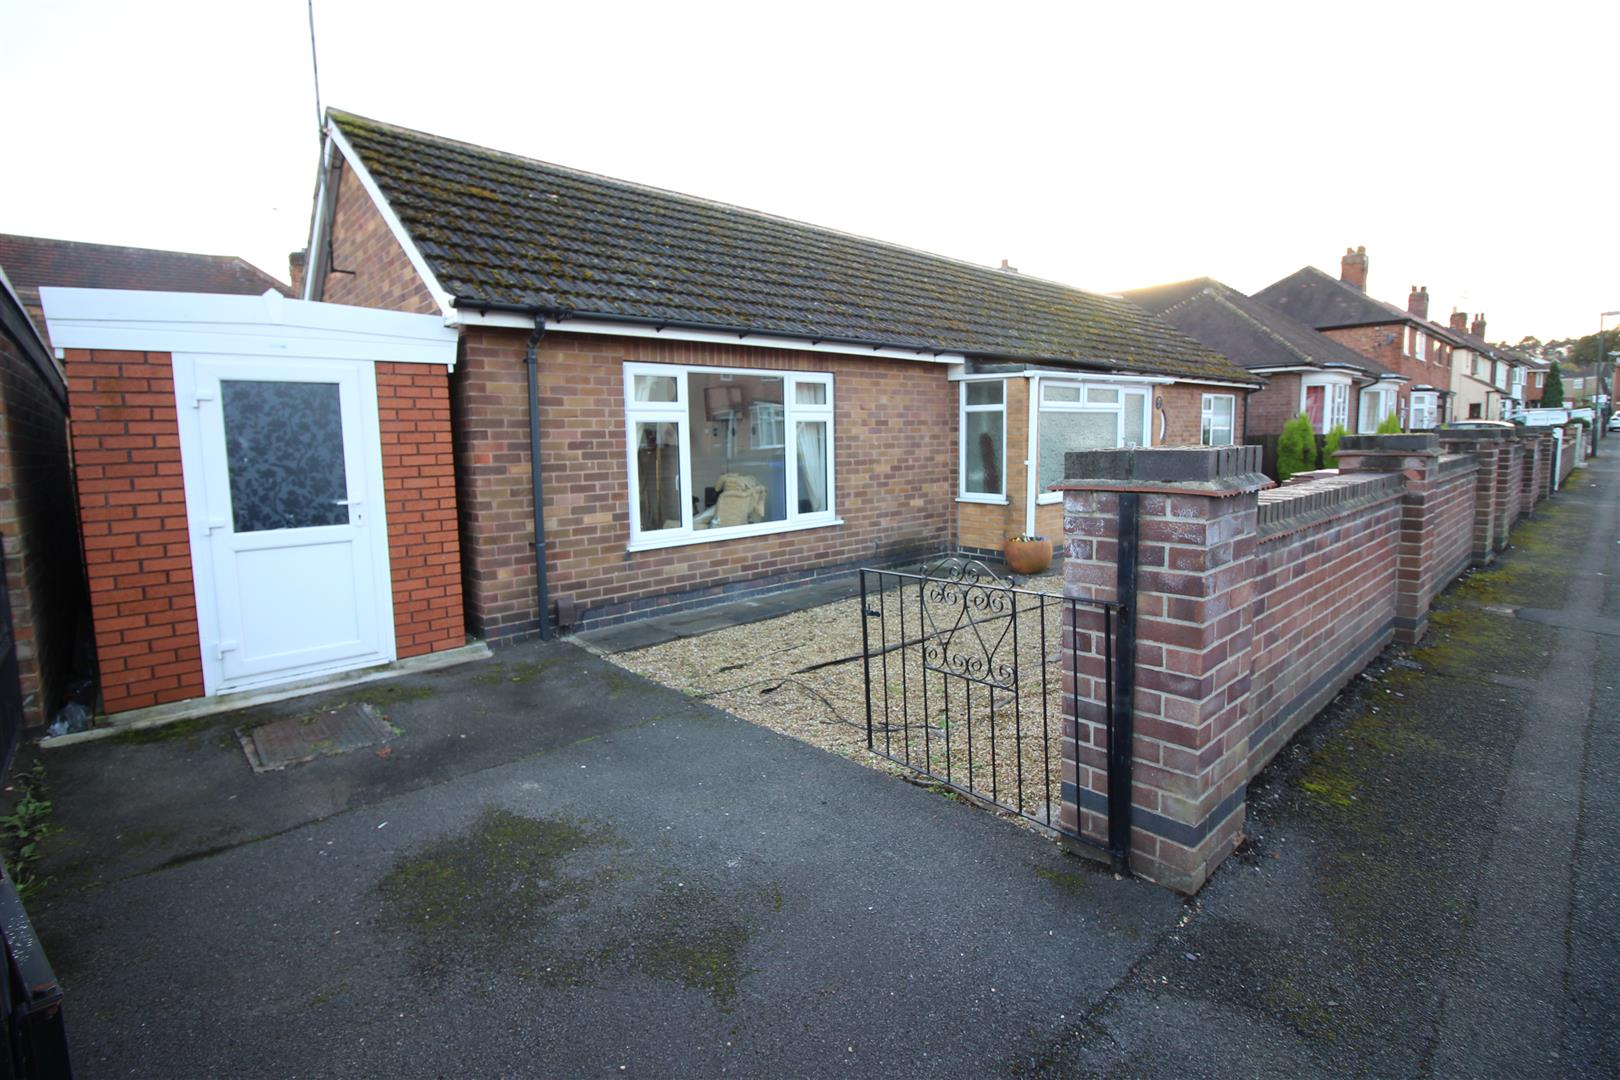 2 Bedrooms Bungalow for sale in Dorothy Avenue, Sandiacre, Nottingham